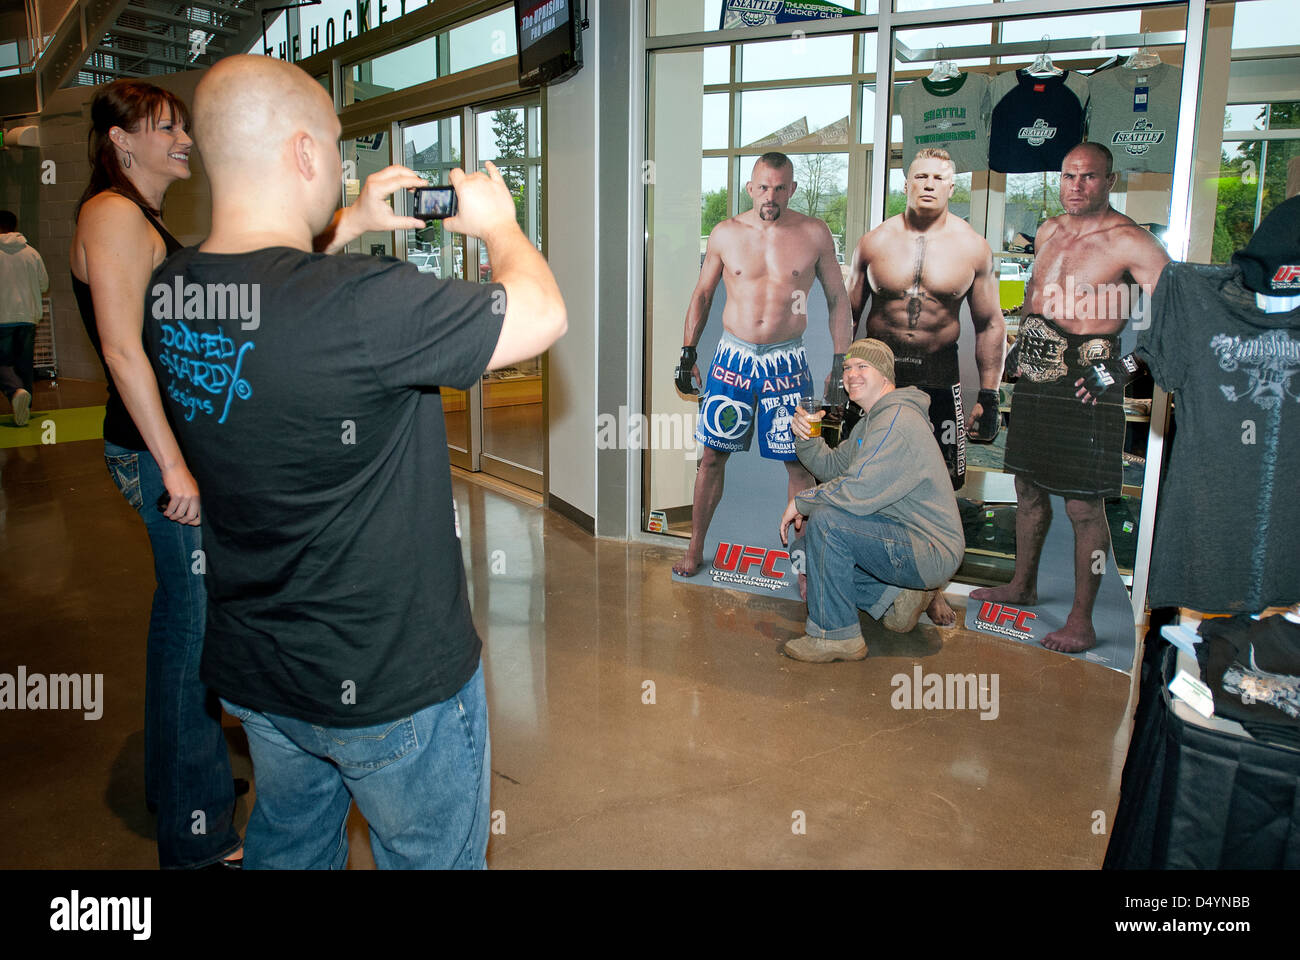 Fans posing in front of UFC life-sized cardboard stand. - Stock Image